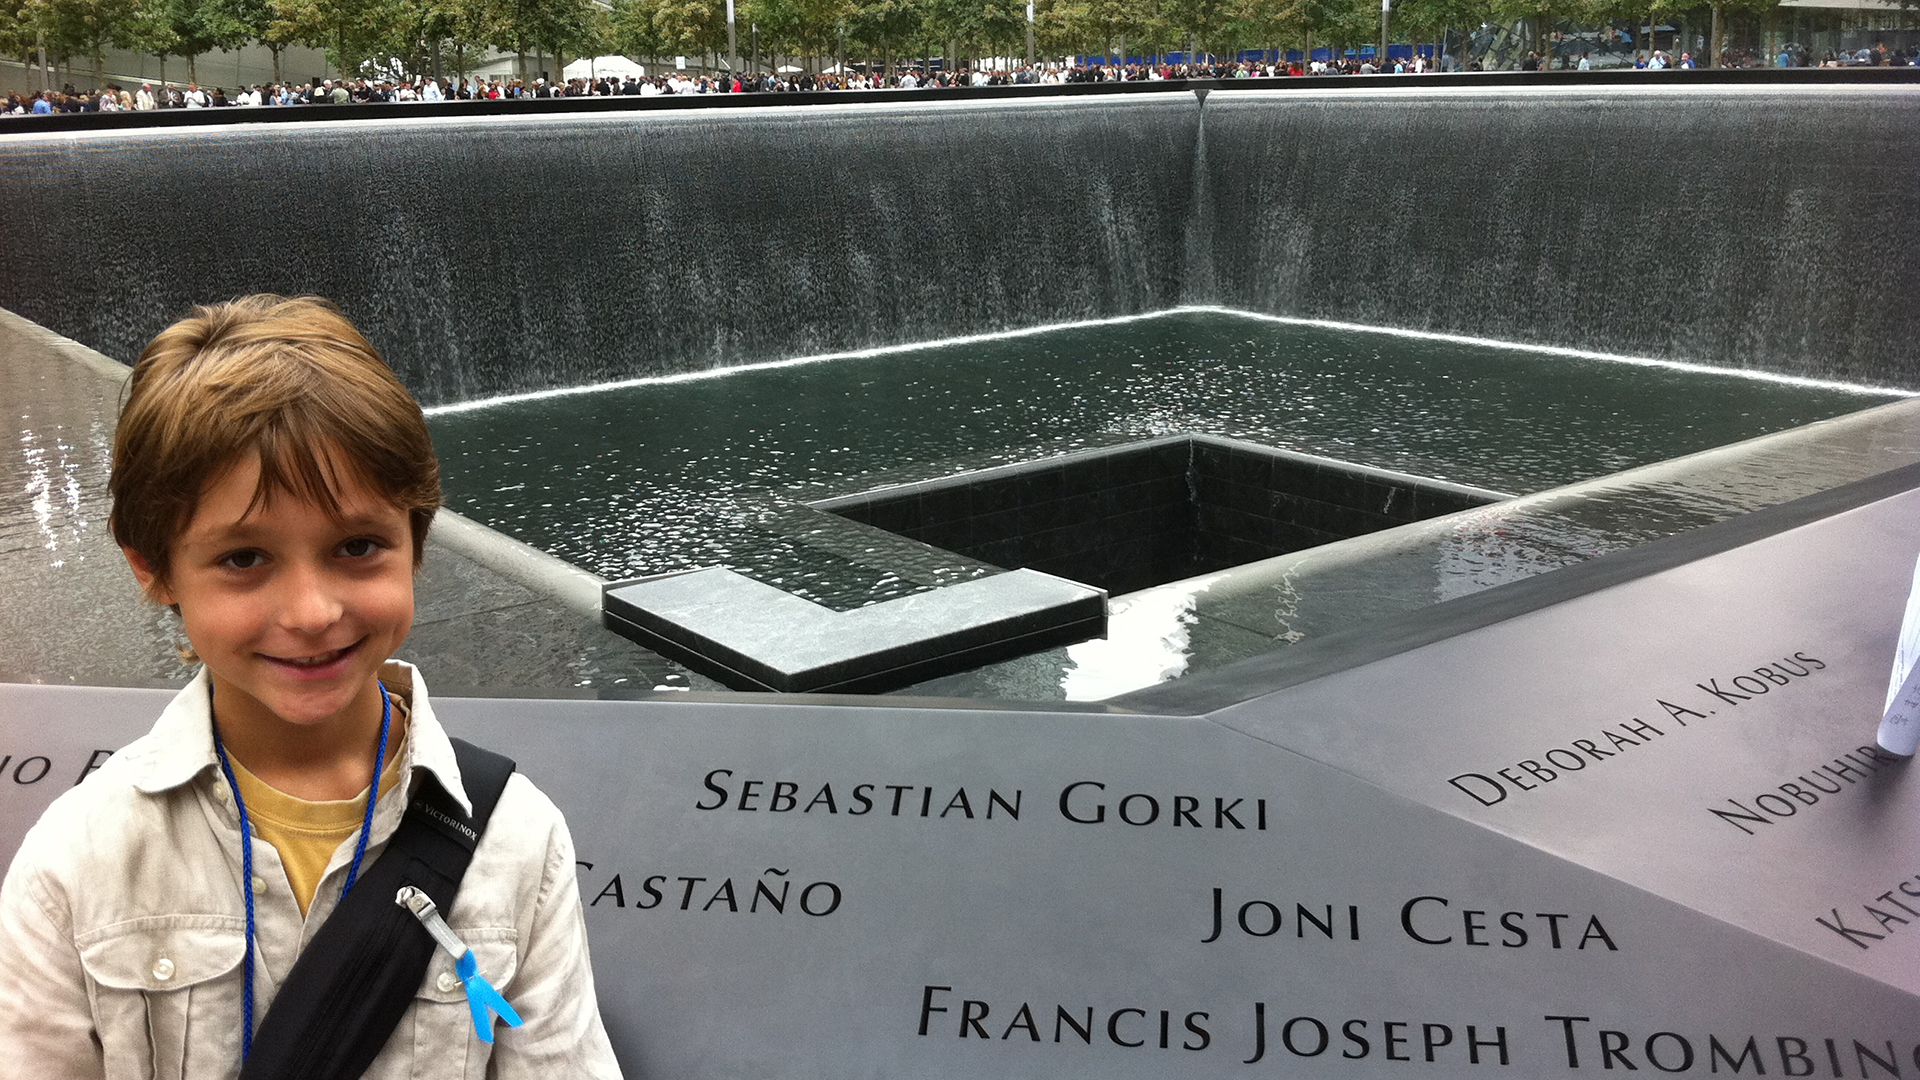 A child stands in front of the Sept. 11 memorial pool in New York City.